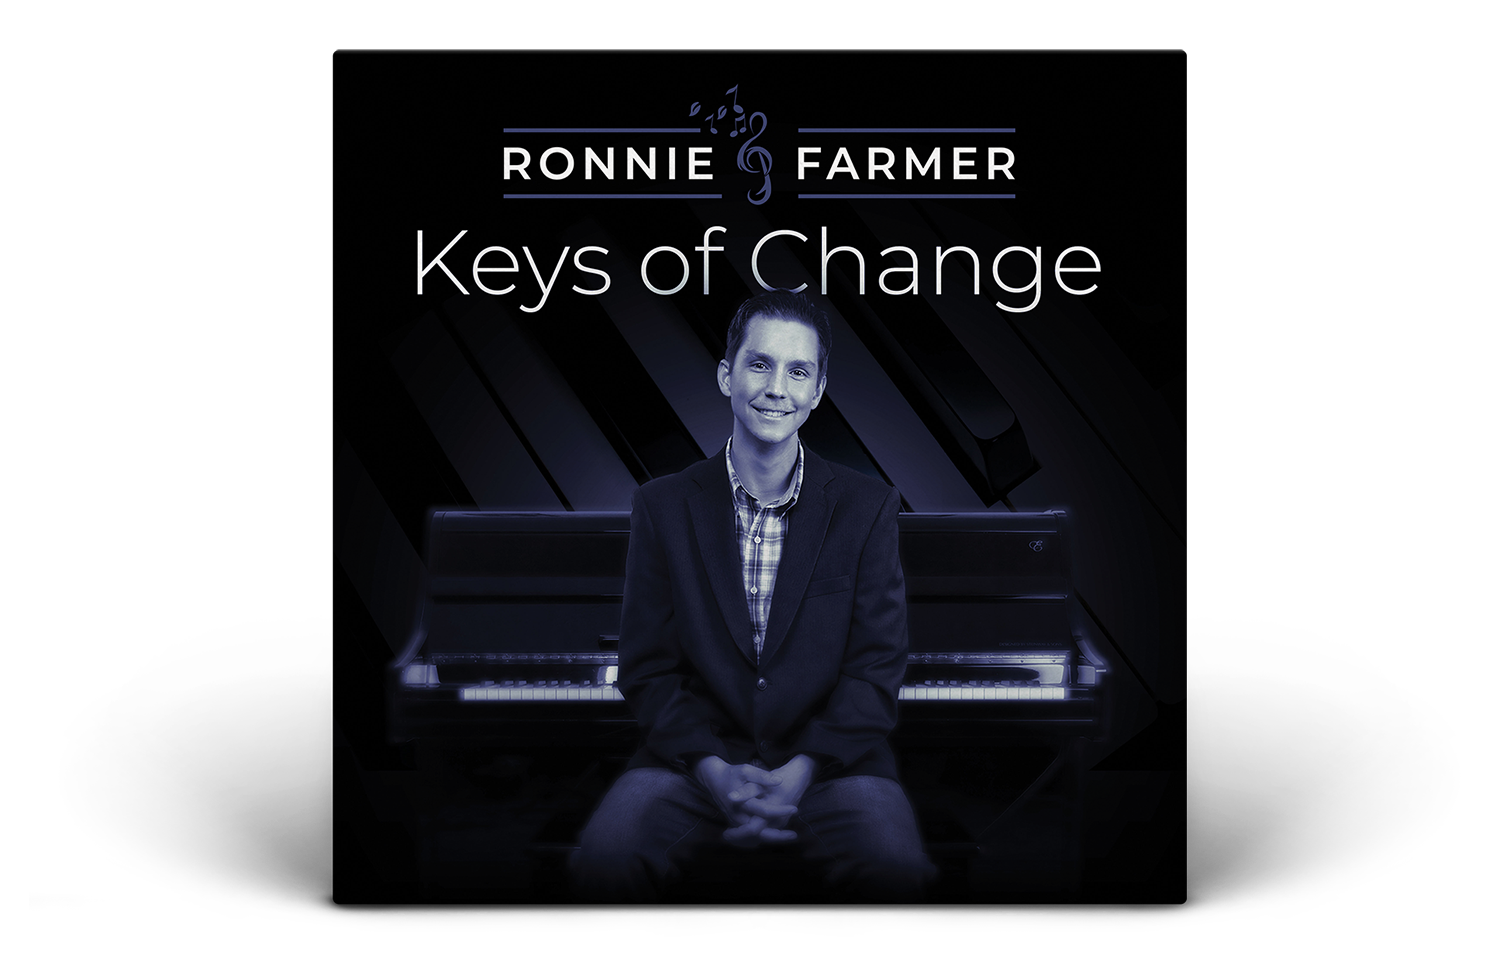 Ronnie Farmer